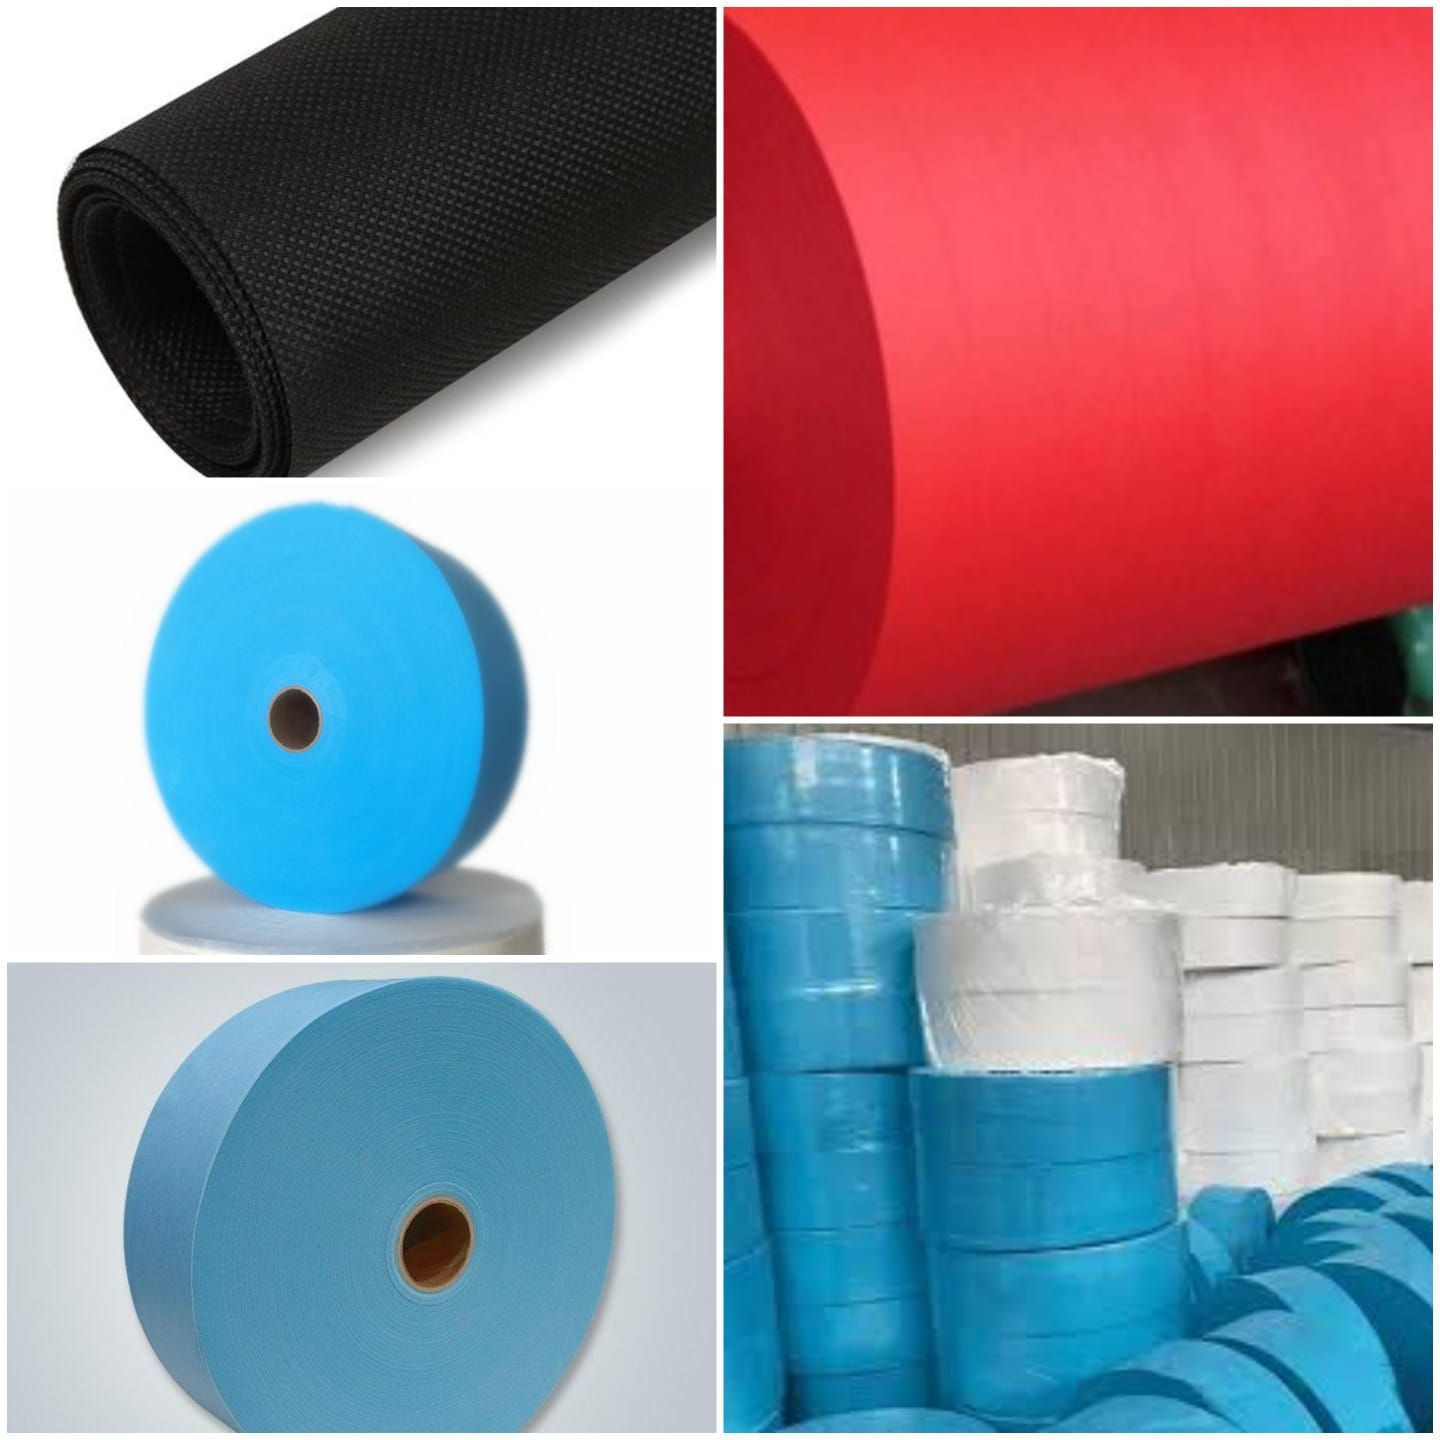 Nonwoven Fabric/Medical Mask Material/Nose Wire/Elastic Gum